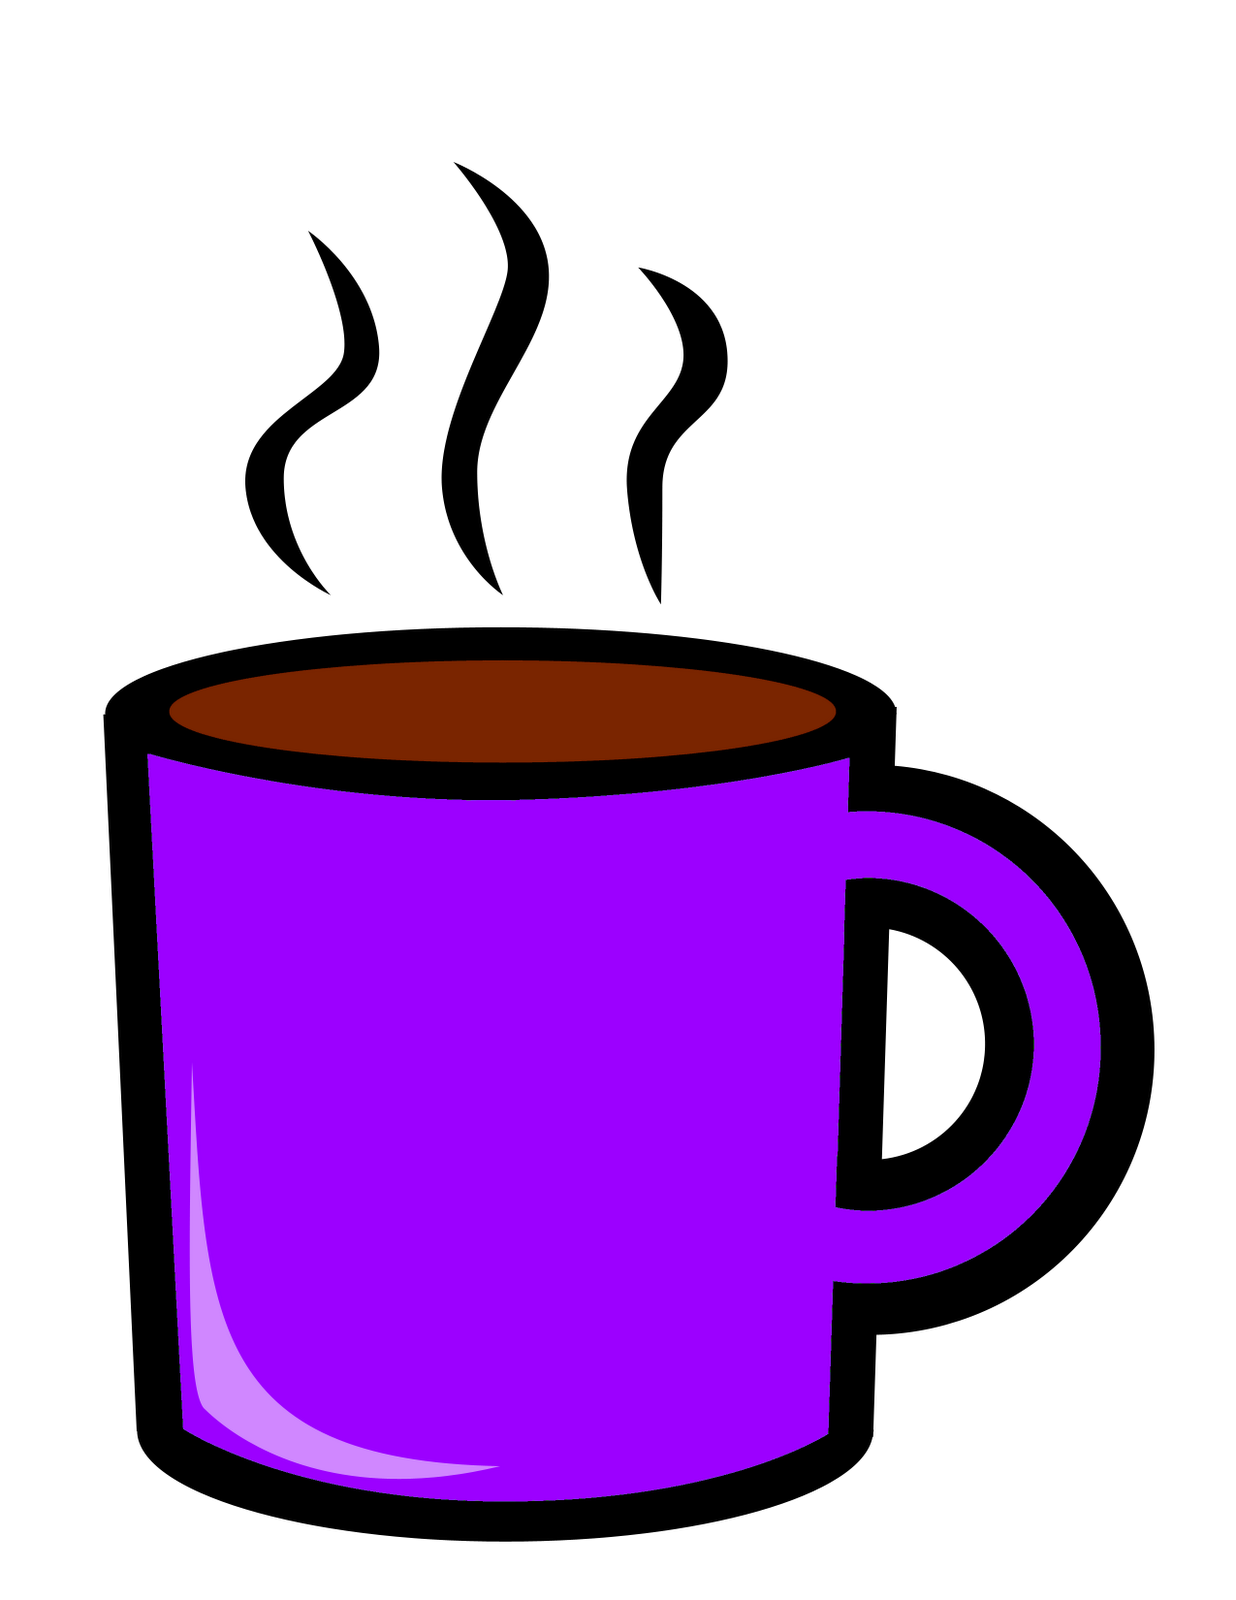 picture library download Cups clipart anthropomorphic. Hot chocolate ikolatal pinterest.